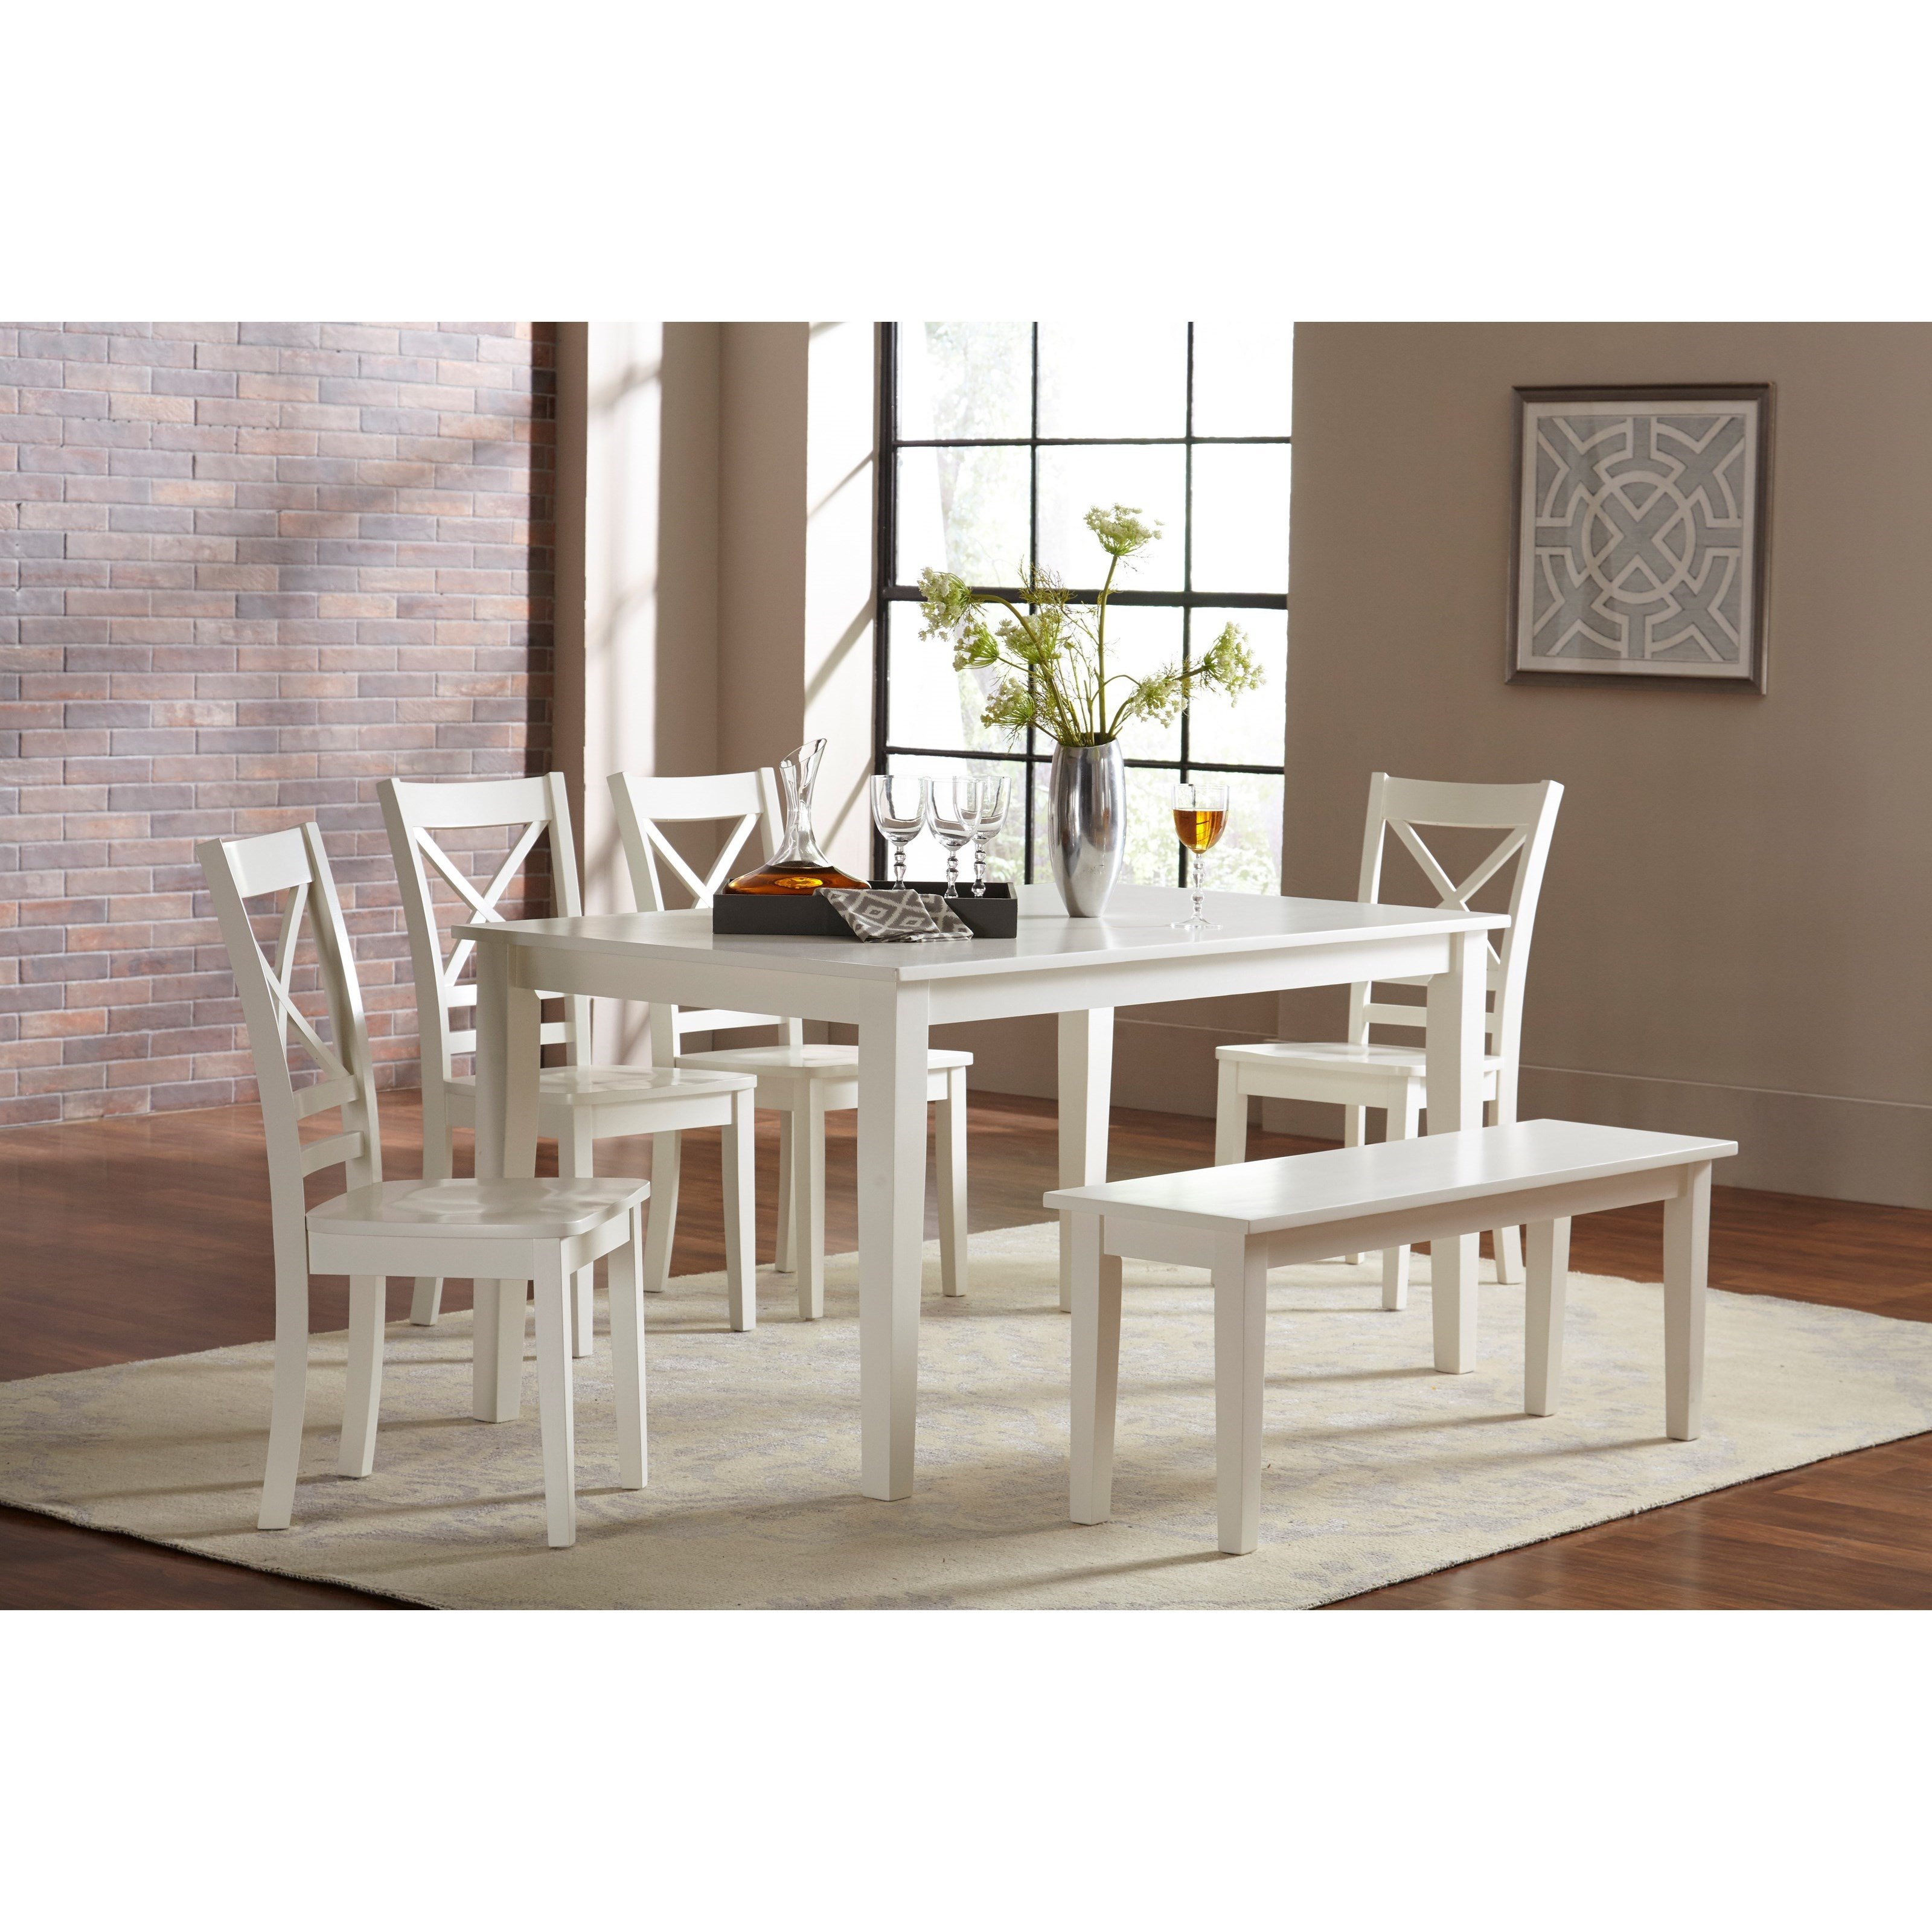 Simplicity Dining Table and Chair/Bench Set by Jofran at Turk Furniture